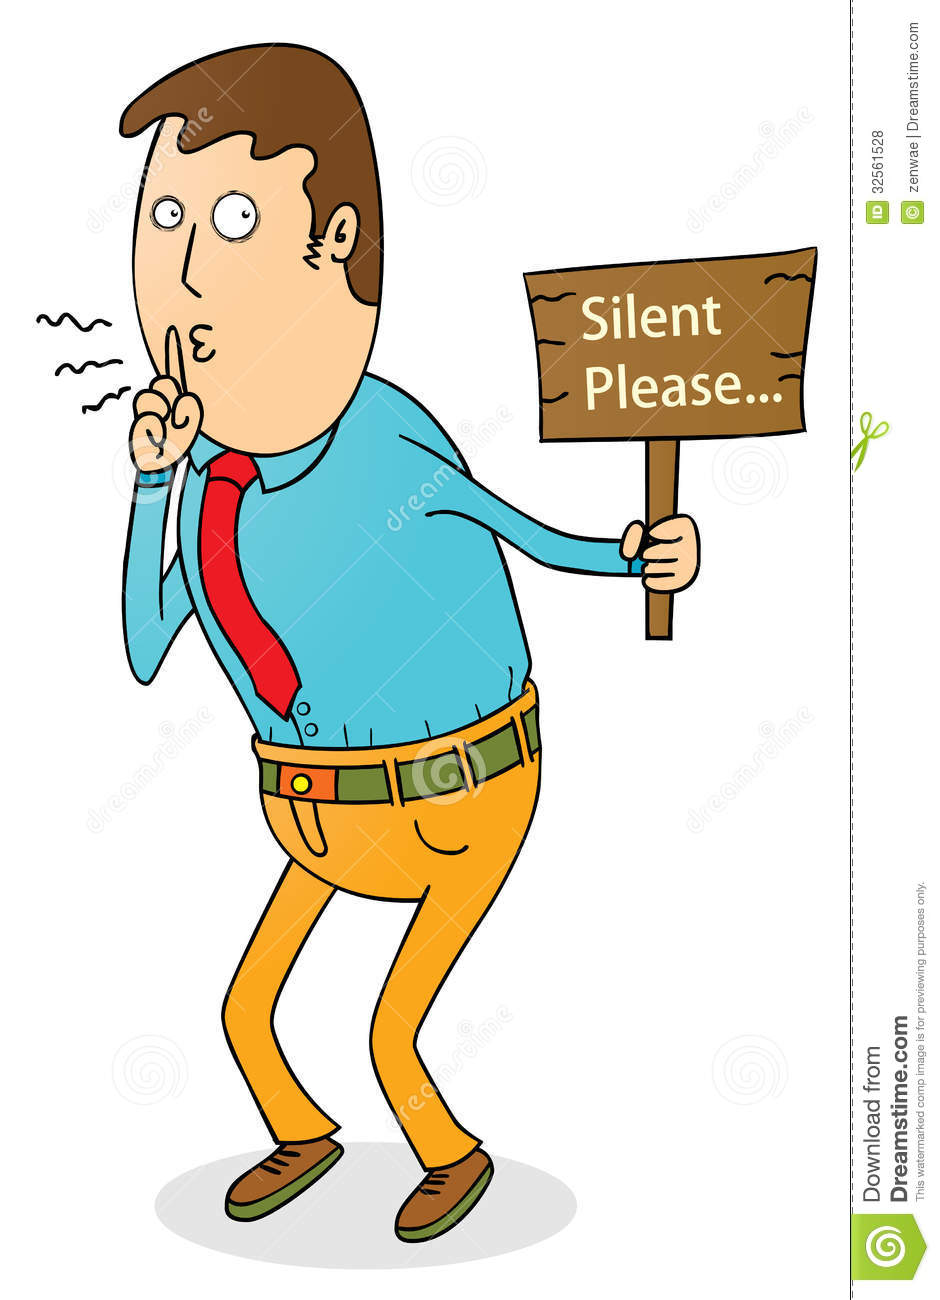 Silent Please Royalty Free Stock Photos Image 32561528Quiet Signal Clipart